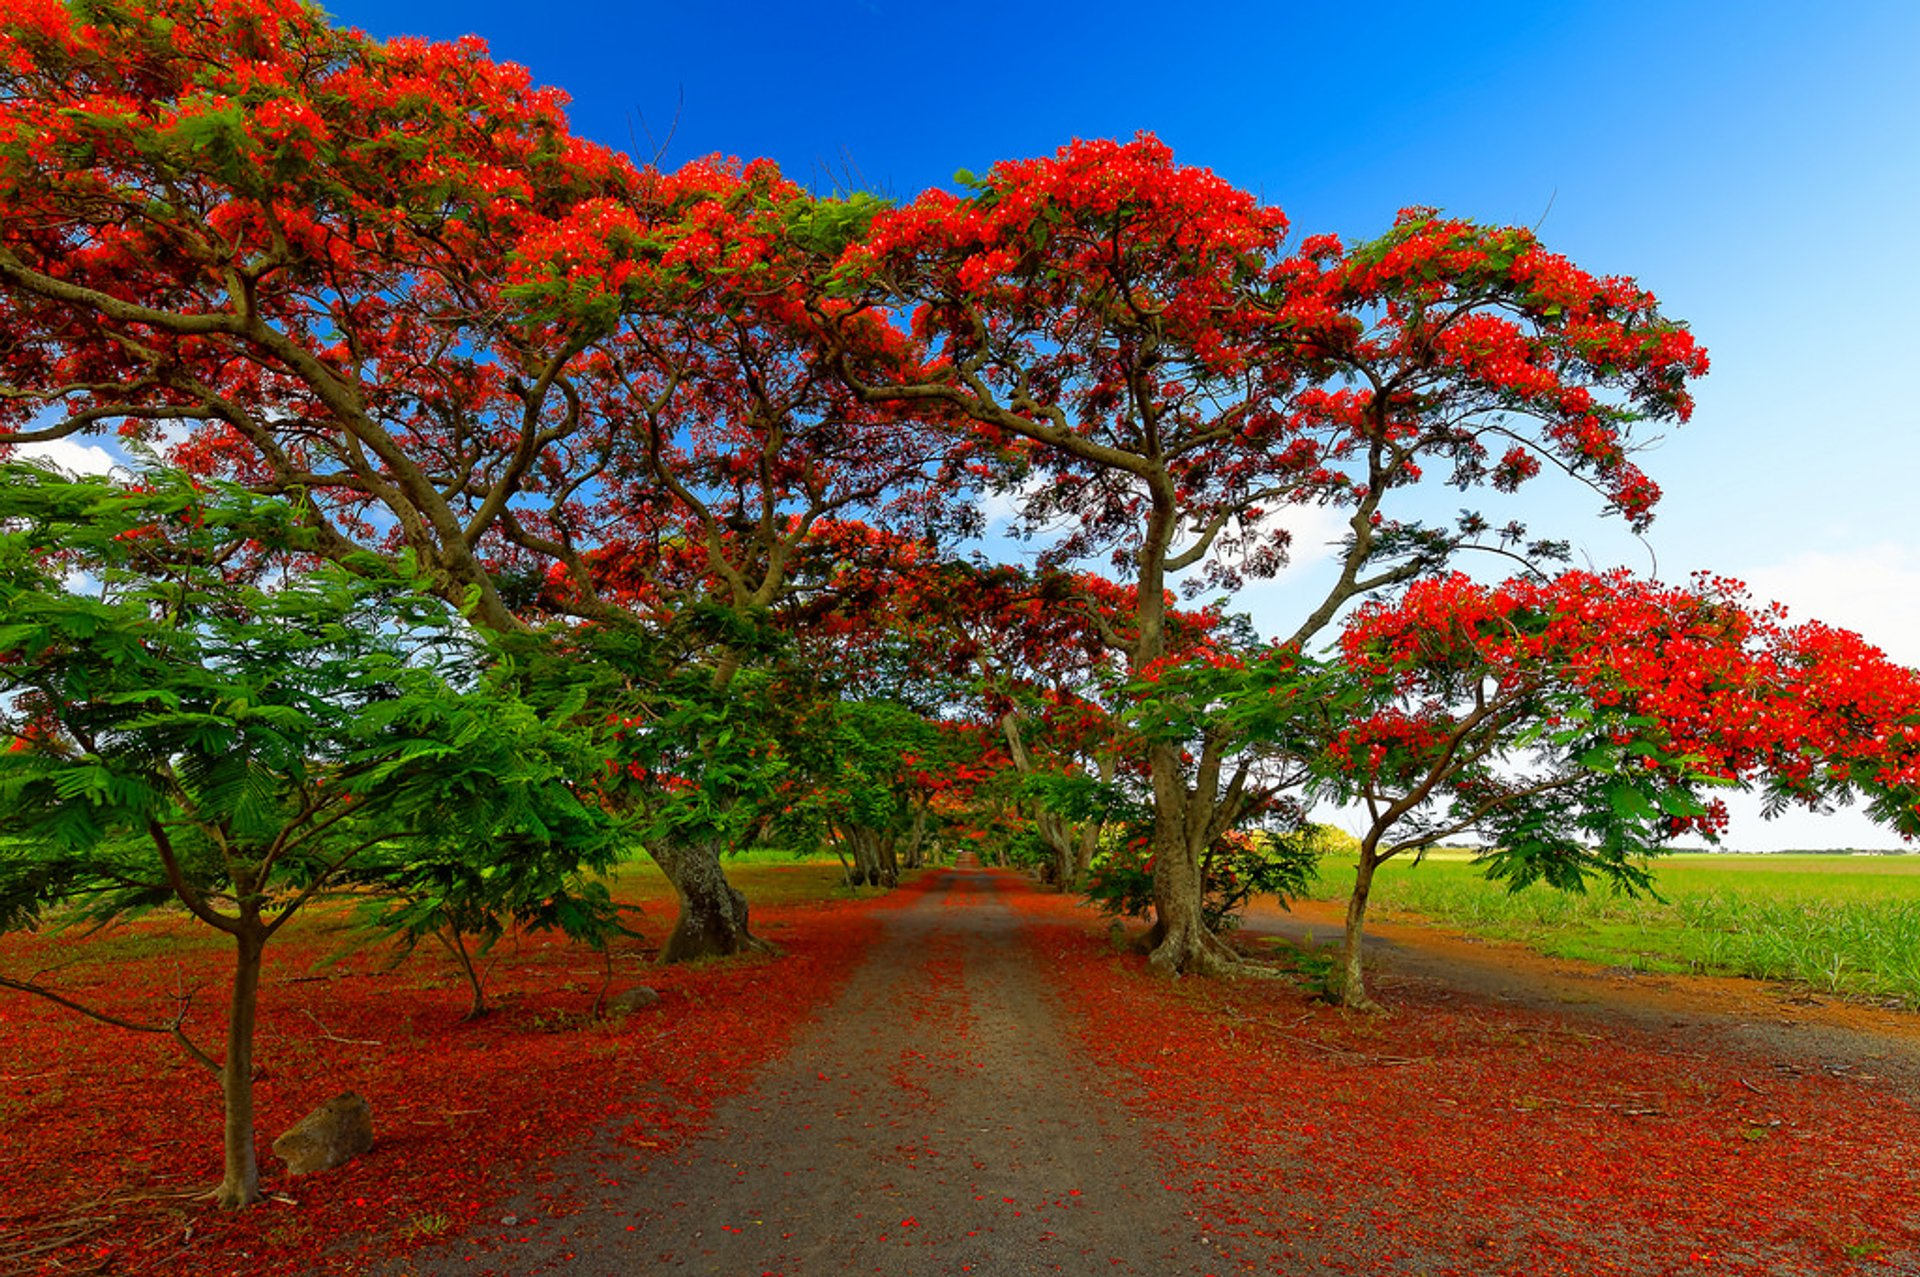 An alley lined by red flamboyant trees, Mon Choisy, Mauritius 2020